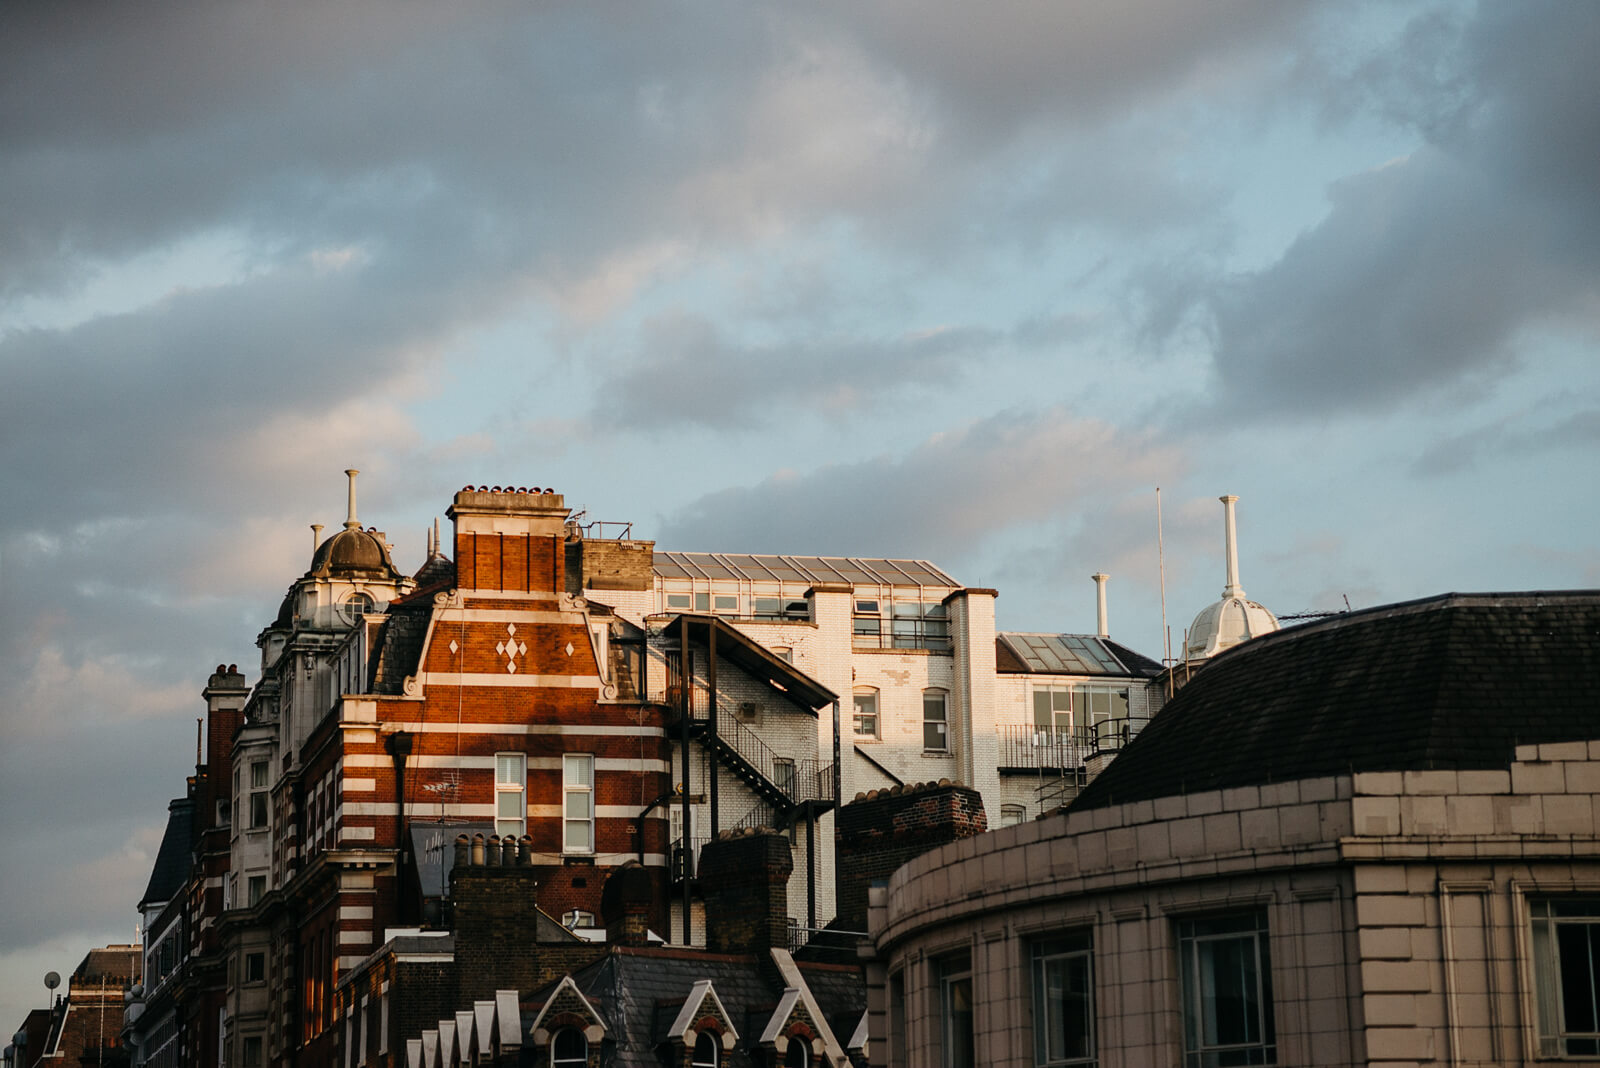 sunset in London from Marylebone One